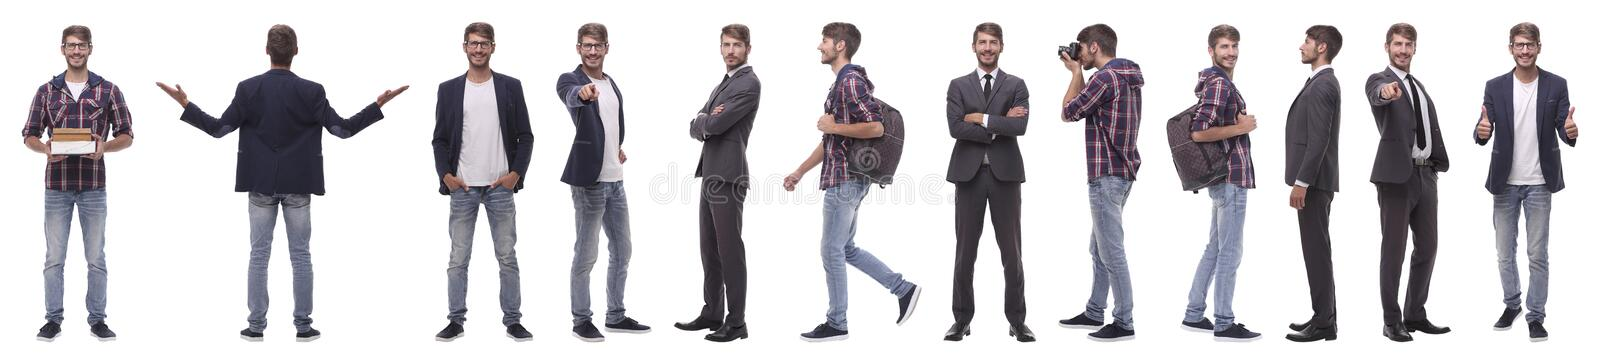 Panoramic collage of a promising young man stock photography